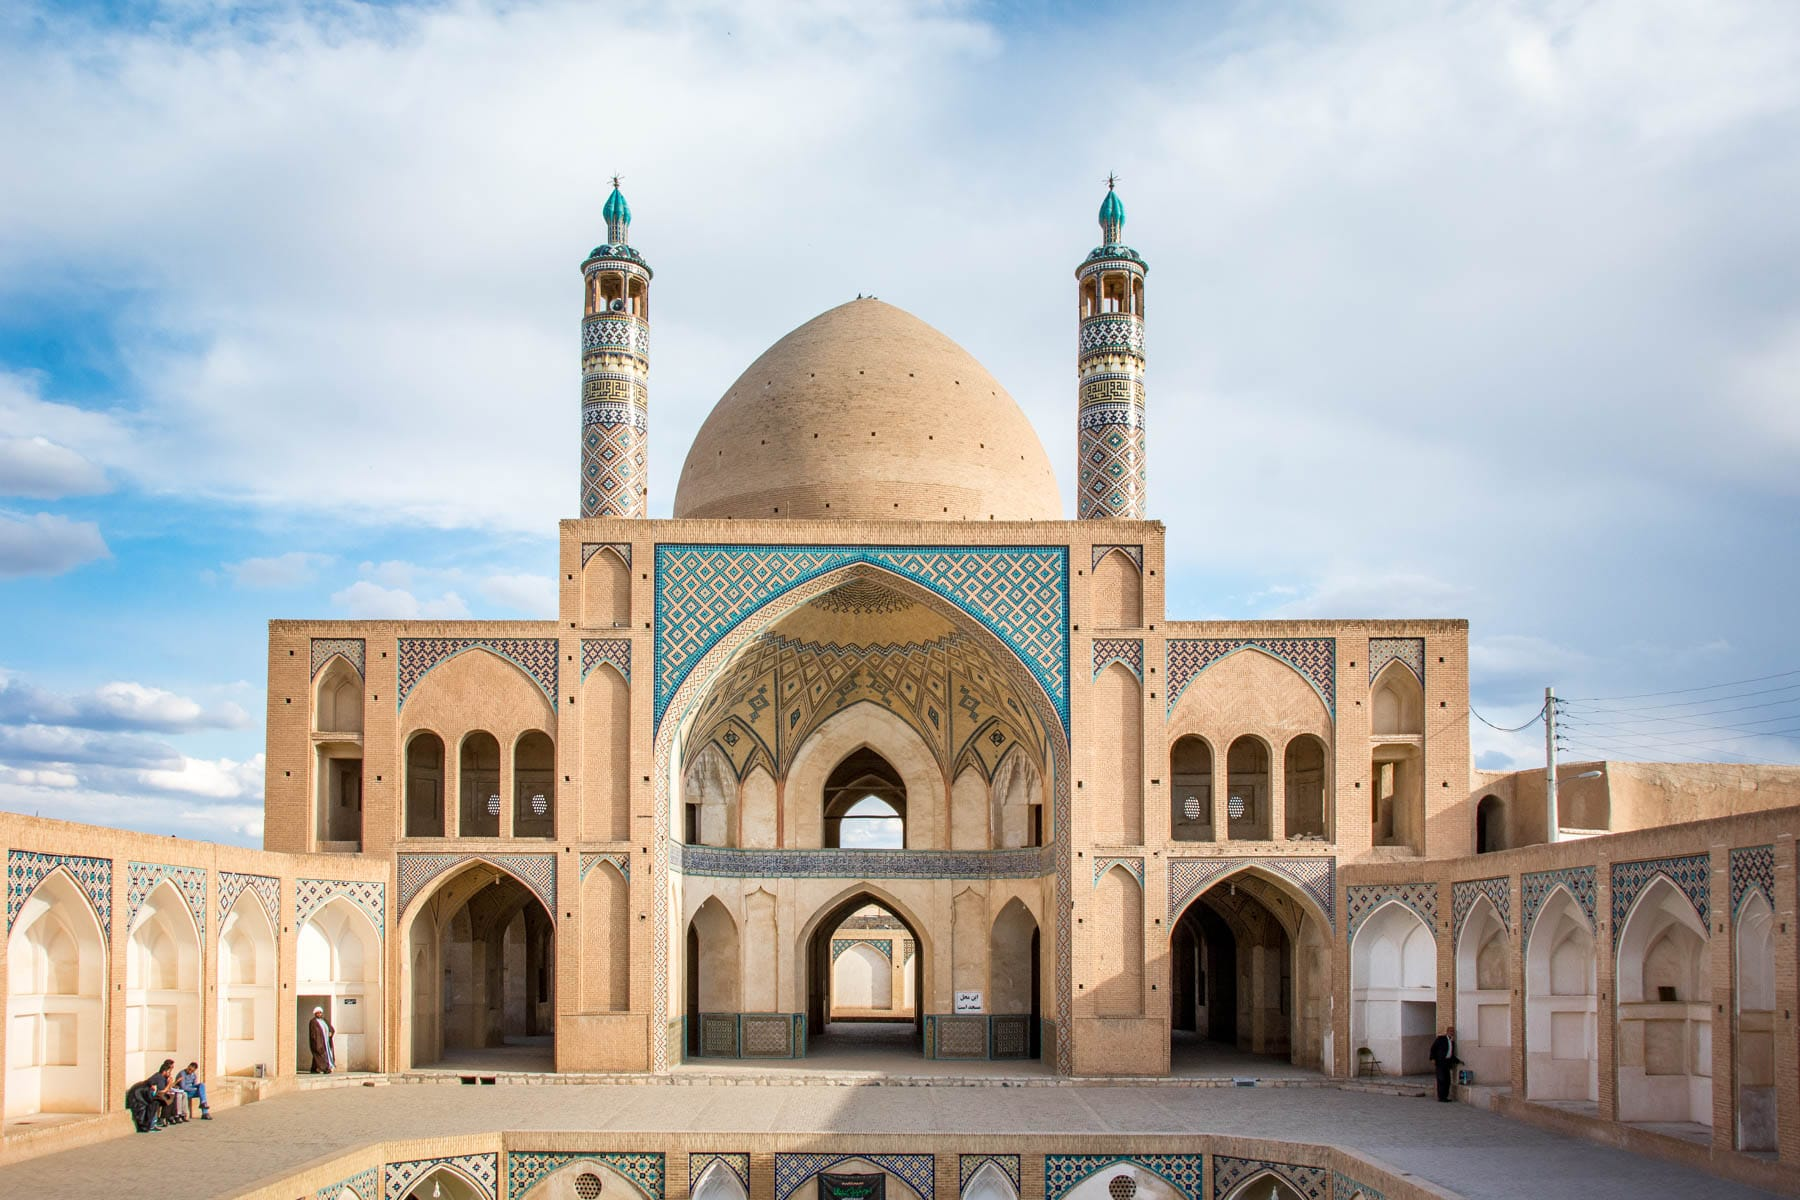 A two week Iran travel itinerary - The Agha Bozorg mosque in Kashan, Iran - Lost With Purpose